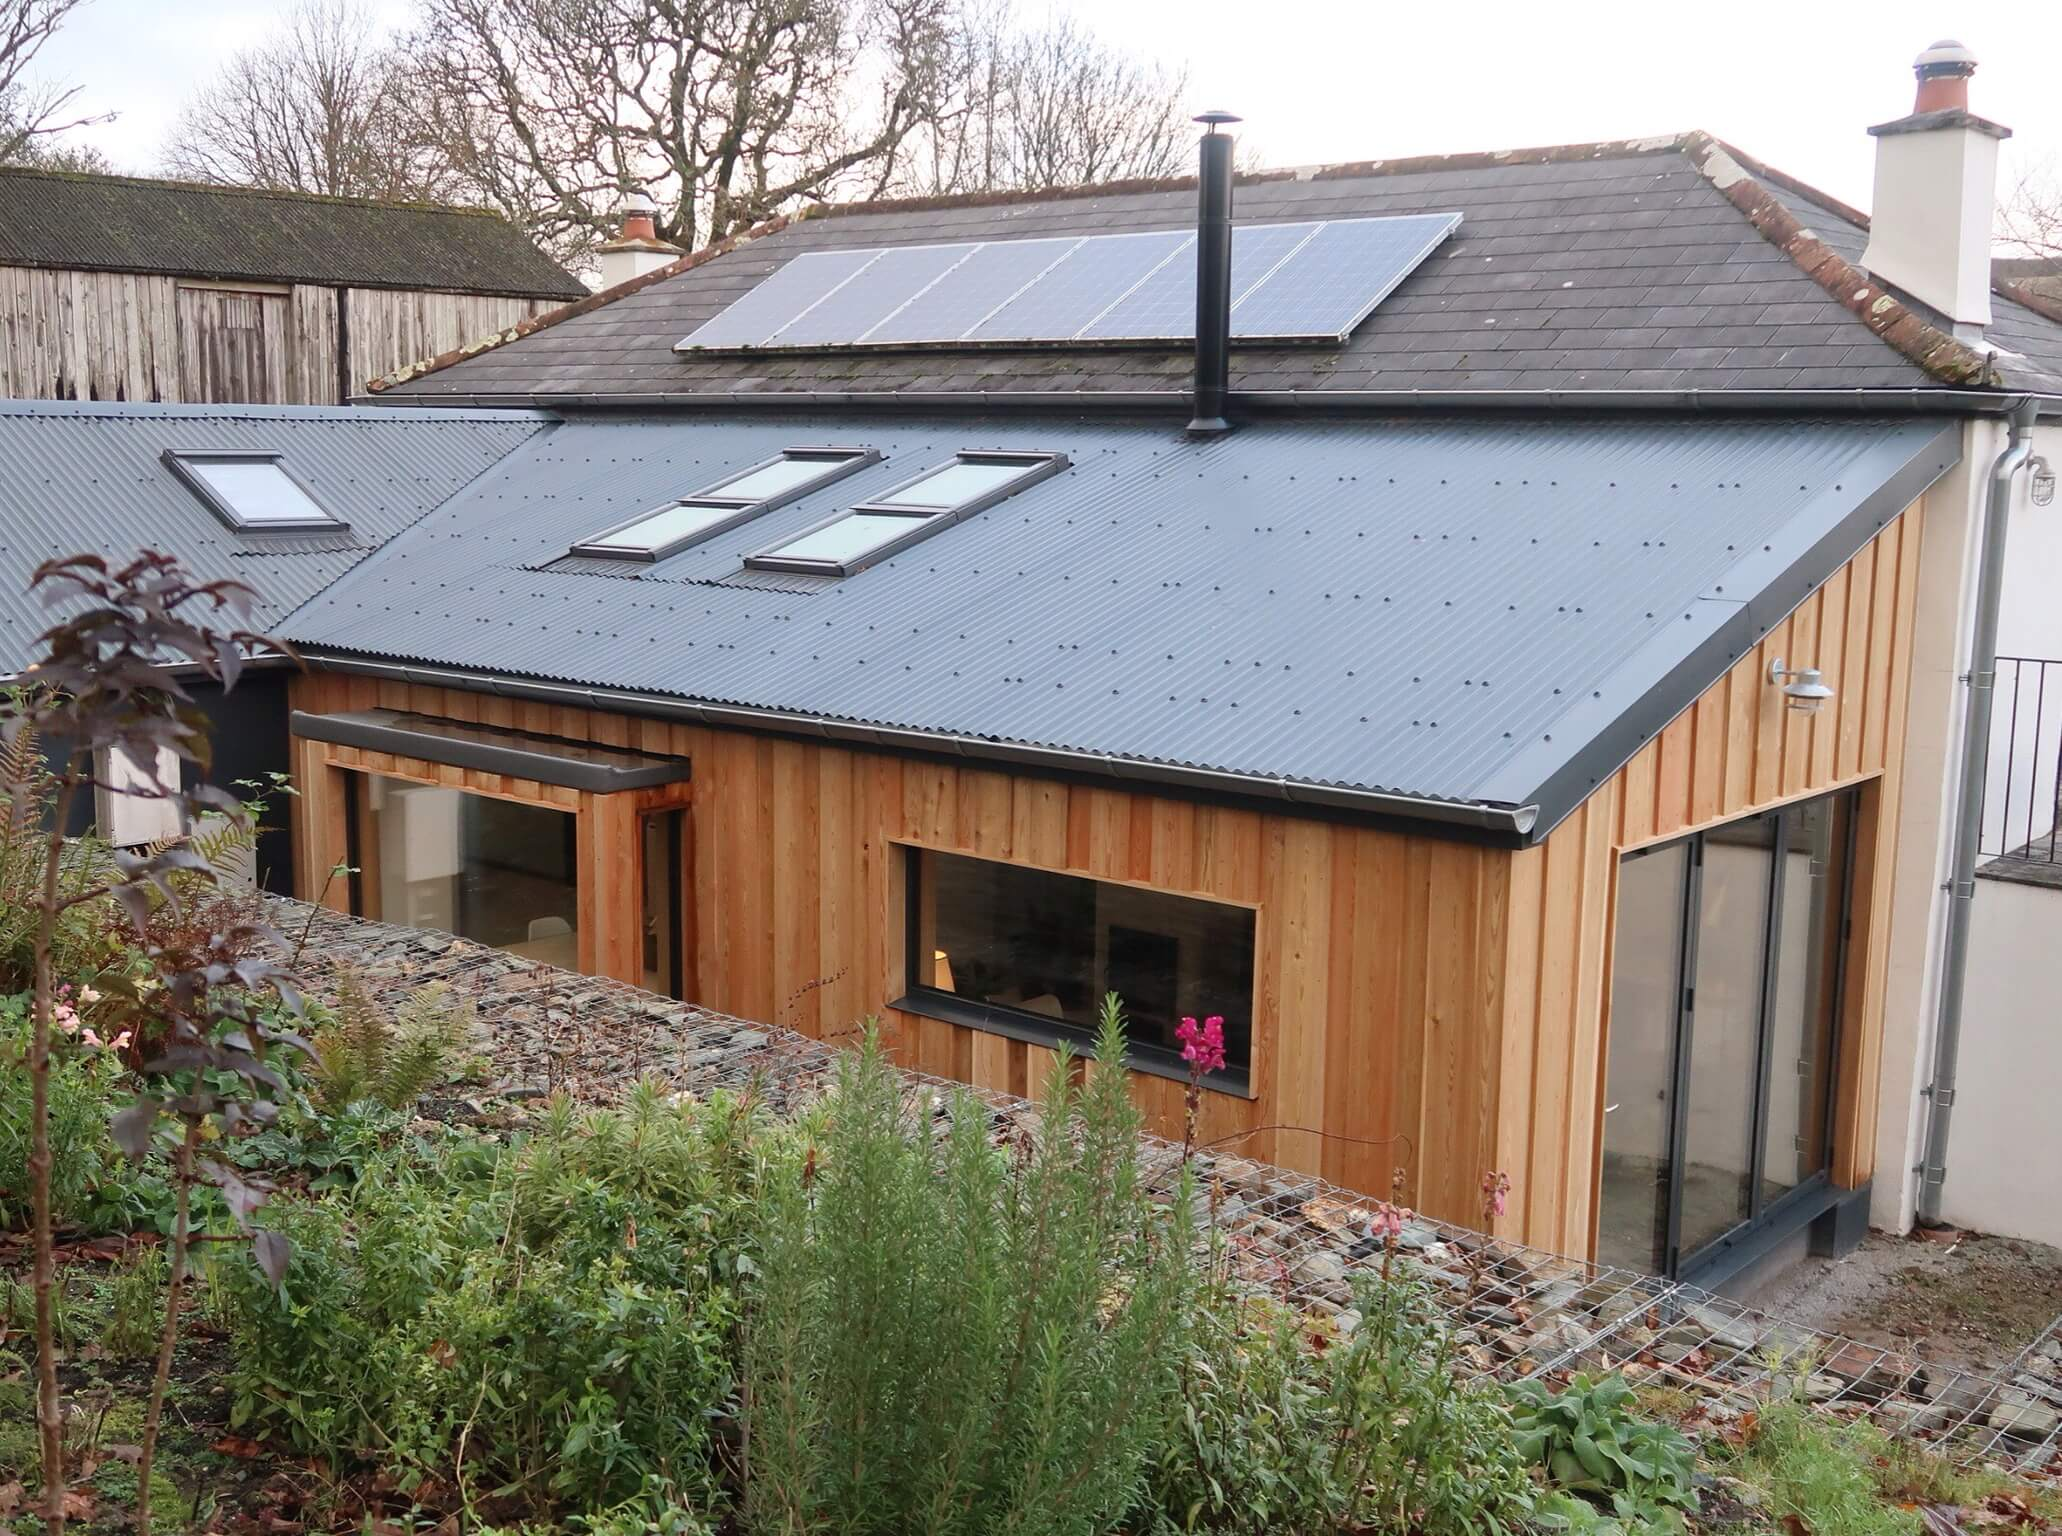 Simply_six_acres on Instagram have added this beautiful extension to their existing home.